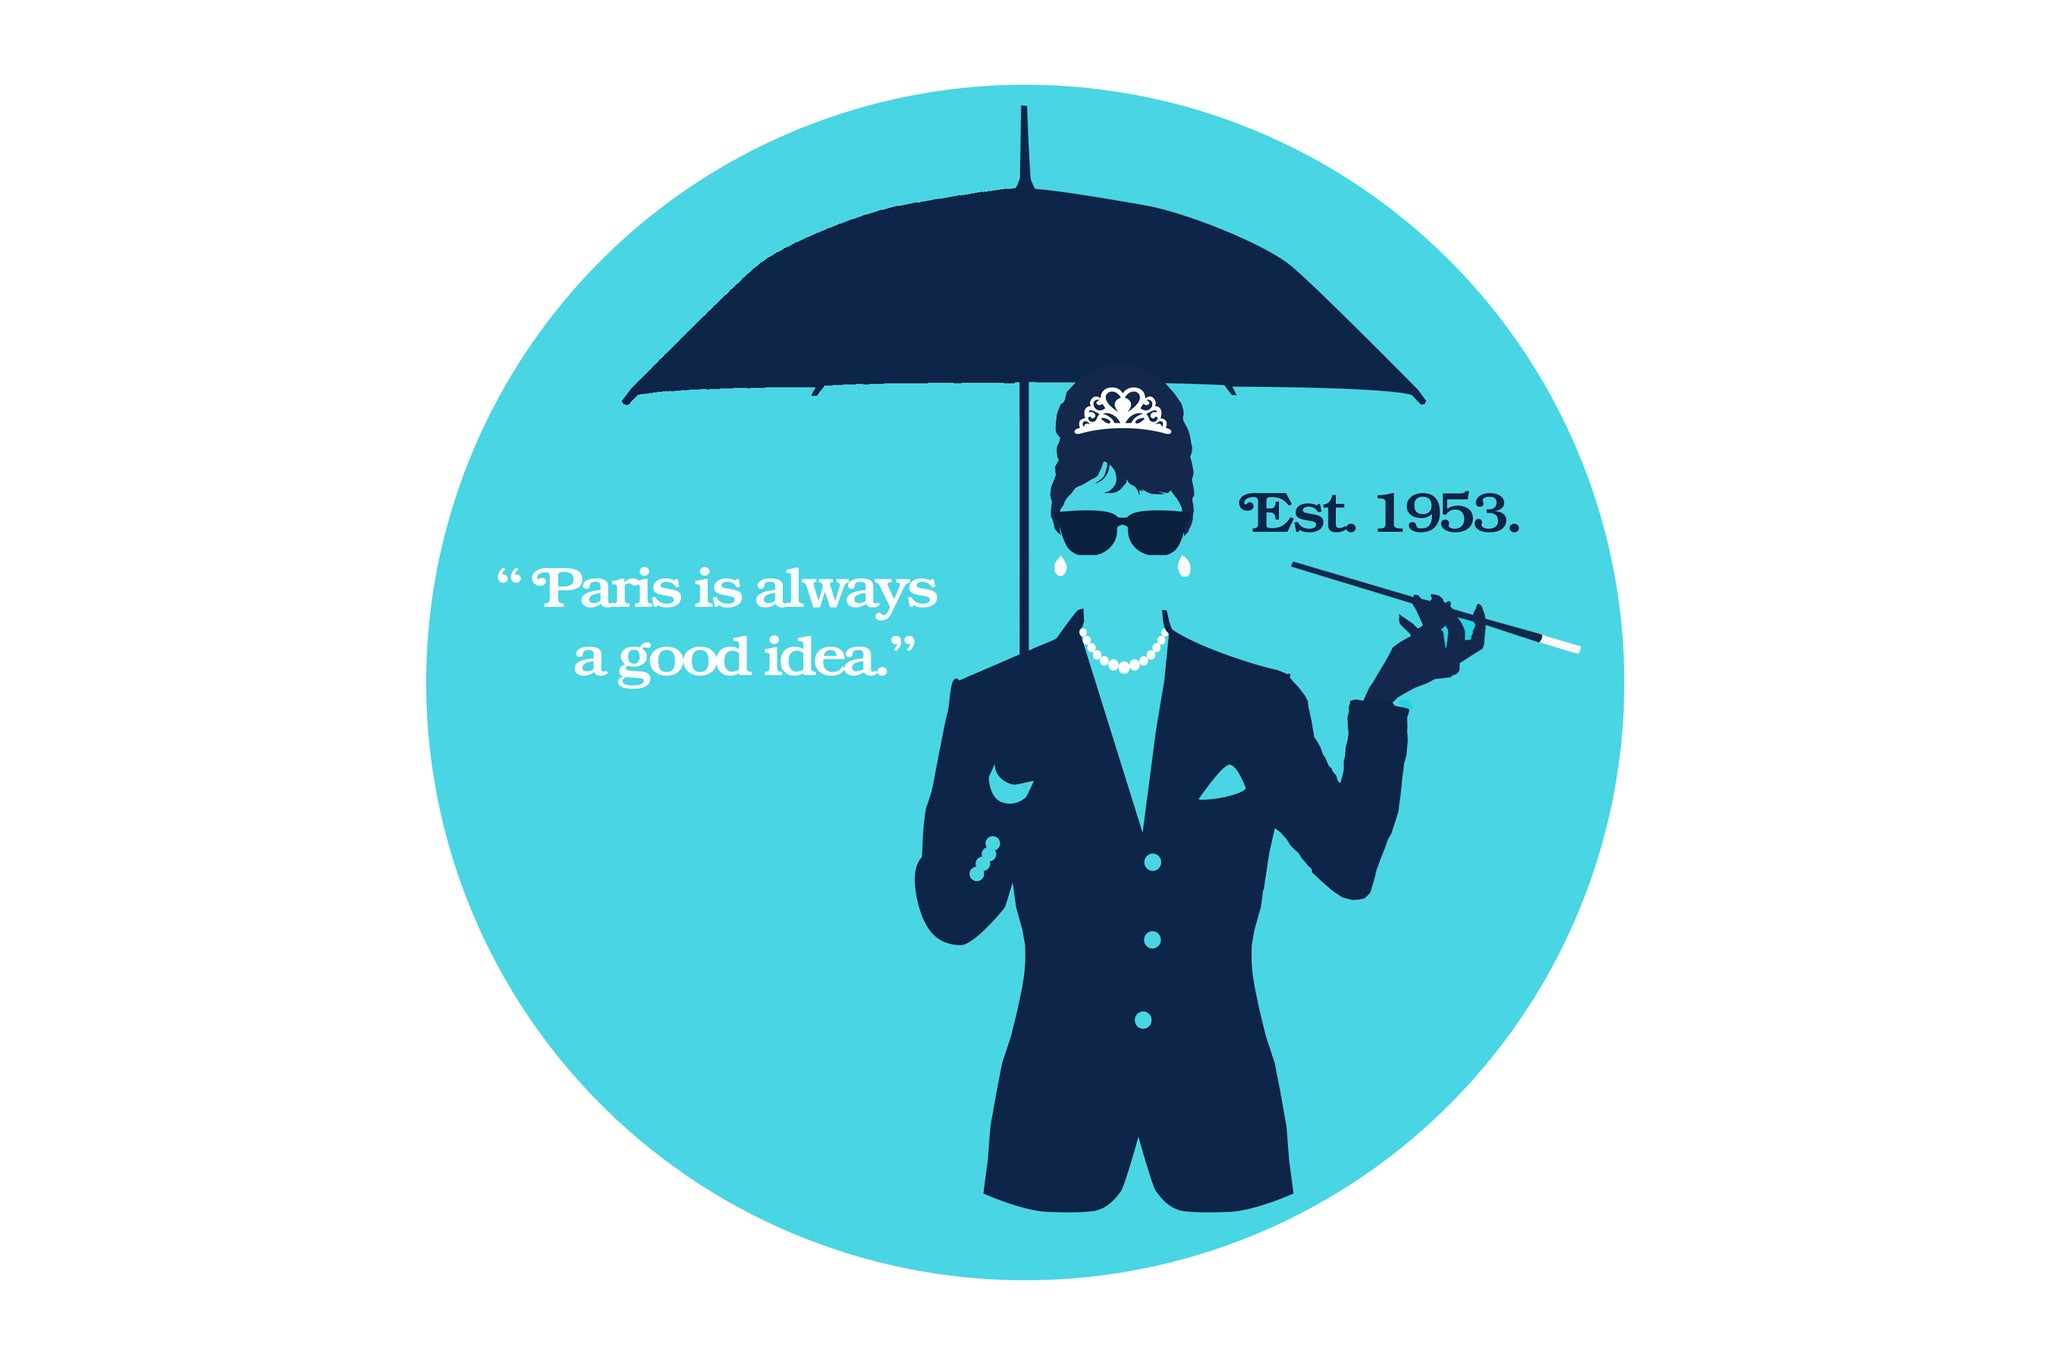 """Illustration of woman holding an umbrella holding a long cigarette holder. Quote """"Paris is always a good idea."""" Established 1953."""